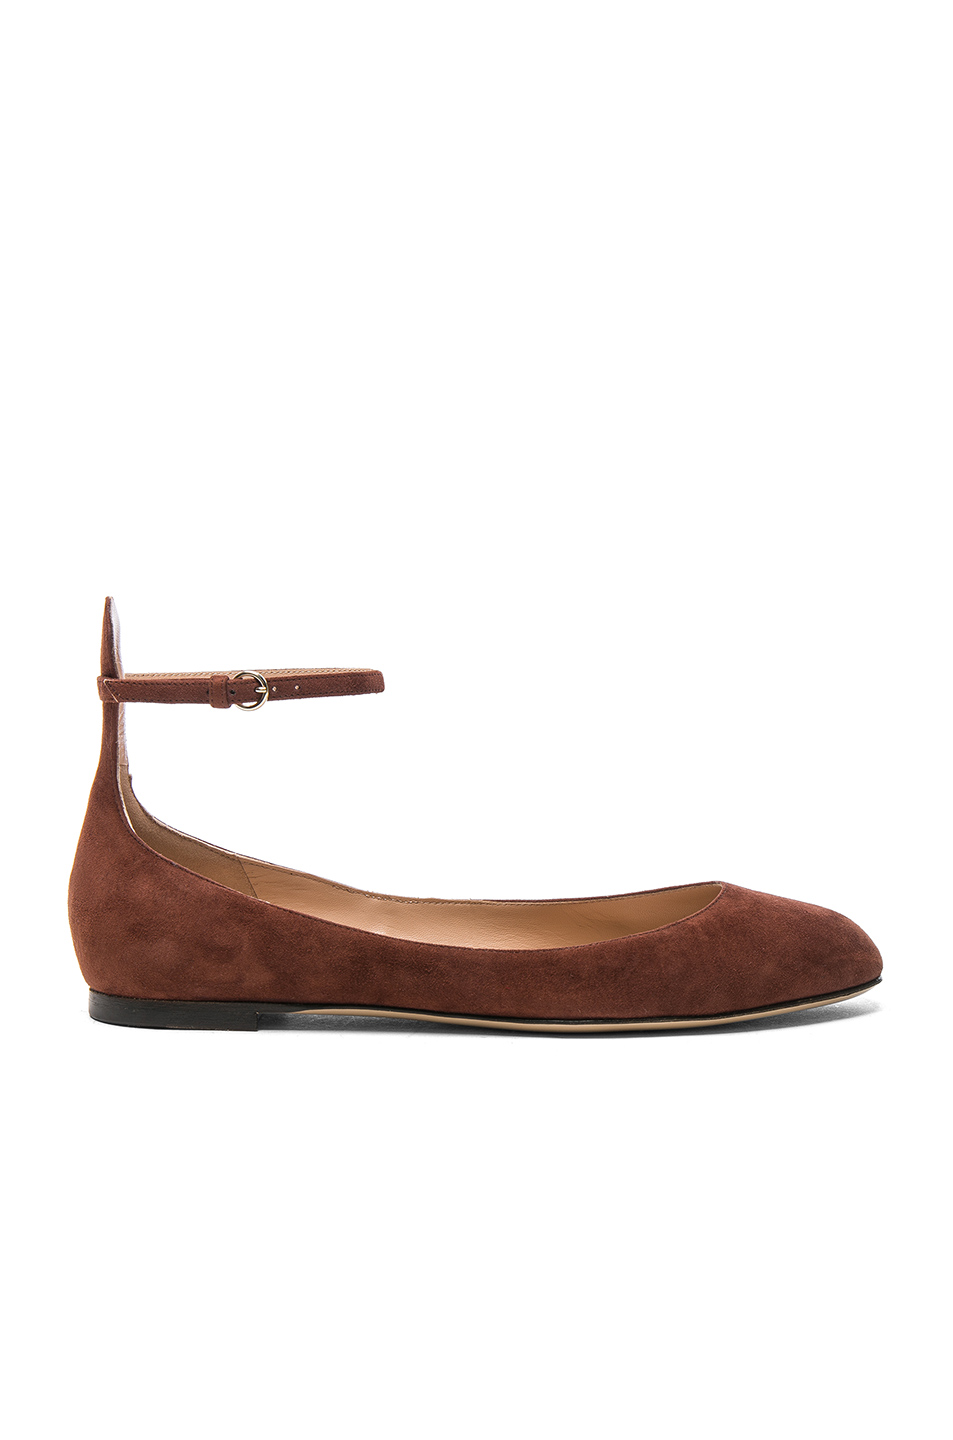 Valentino Suede Tan-Go Flats in Brown